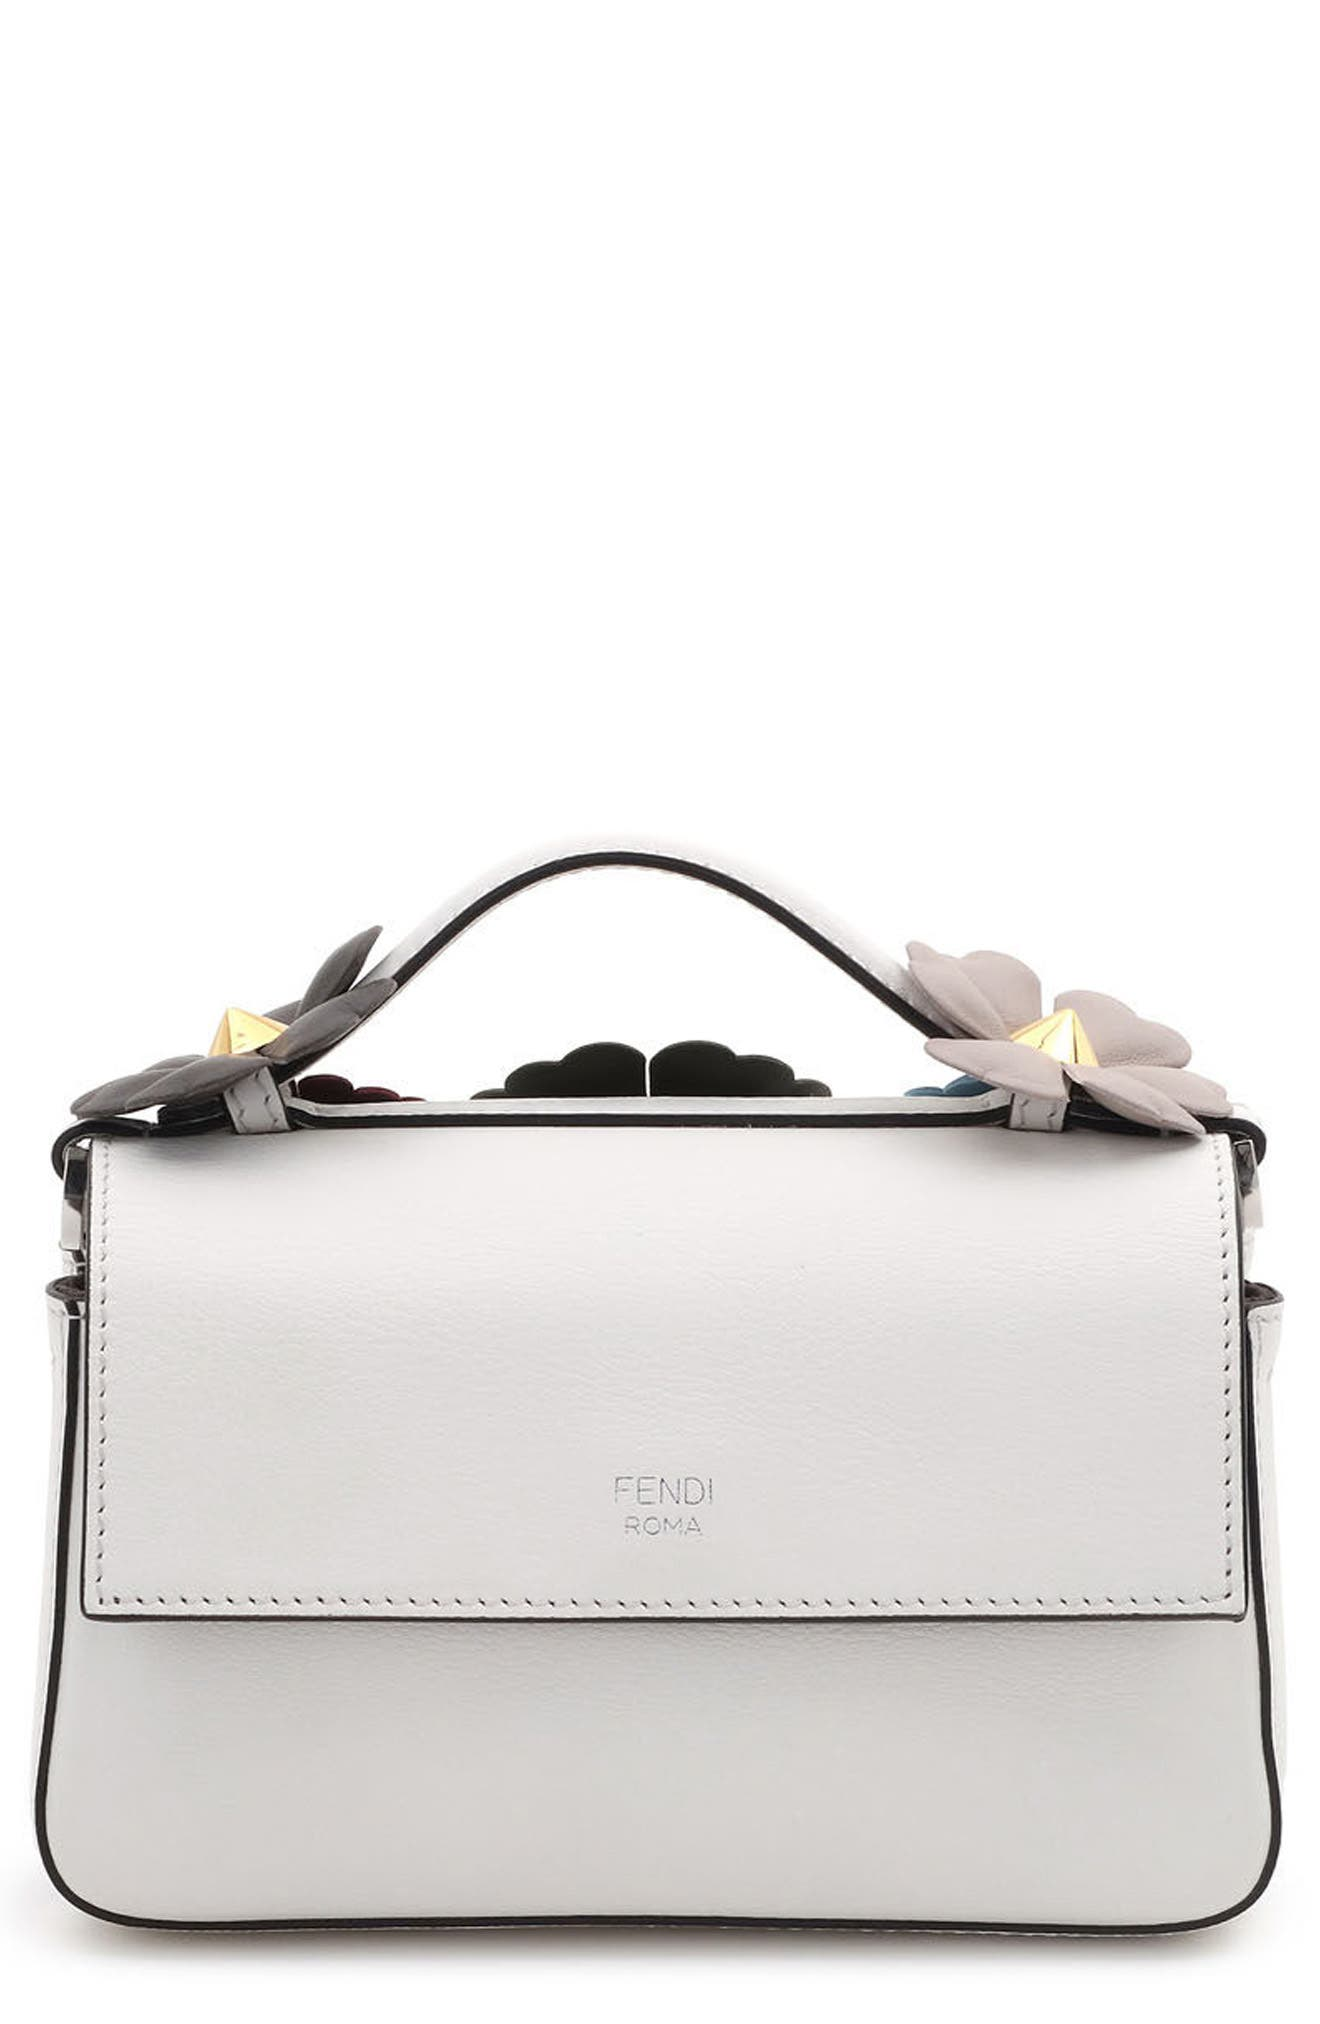 FENDI Flowerland Double Micro Baguette Leather Satchel